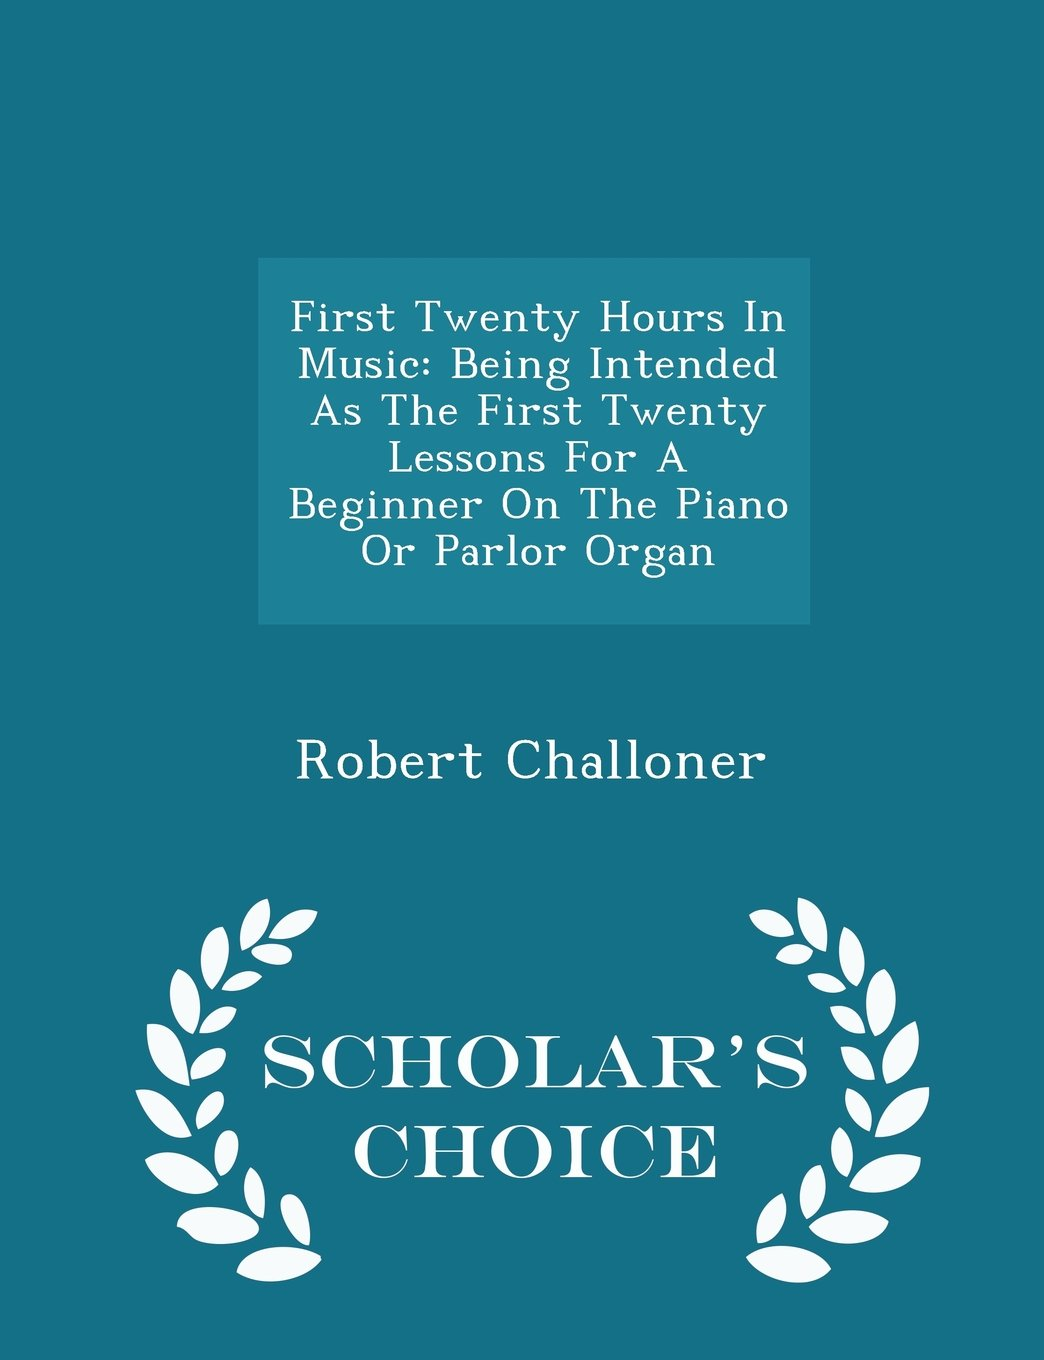 Download First Twenty Hours In Music: Being Intended As The First Twenty Lessons For A Beginner On The Piano Or Parlor Organ - Scholar's Choice Edition PDF ePub ebook